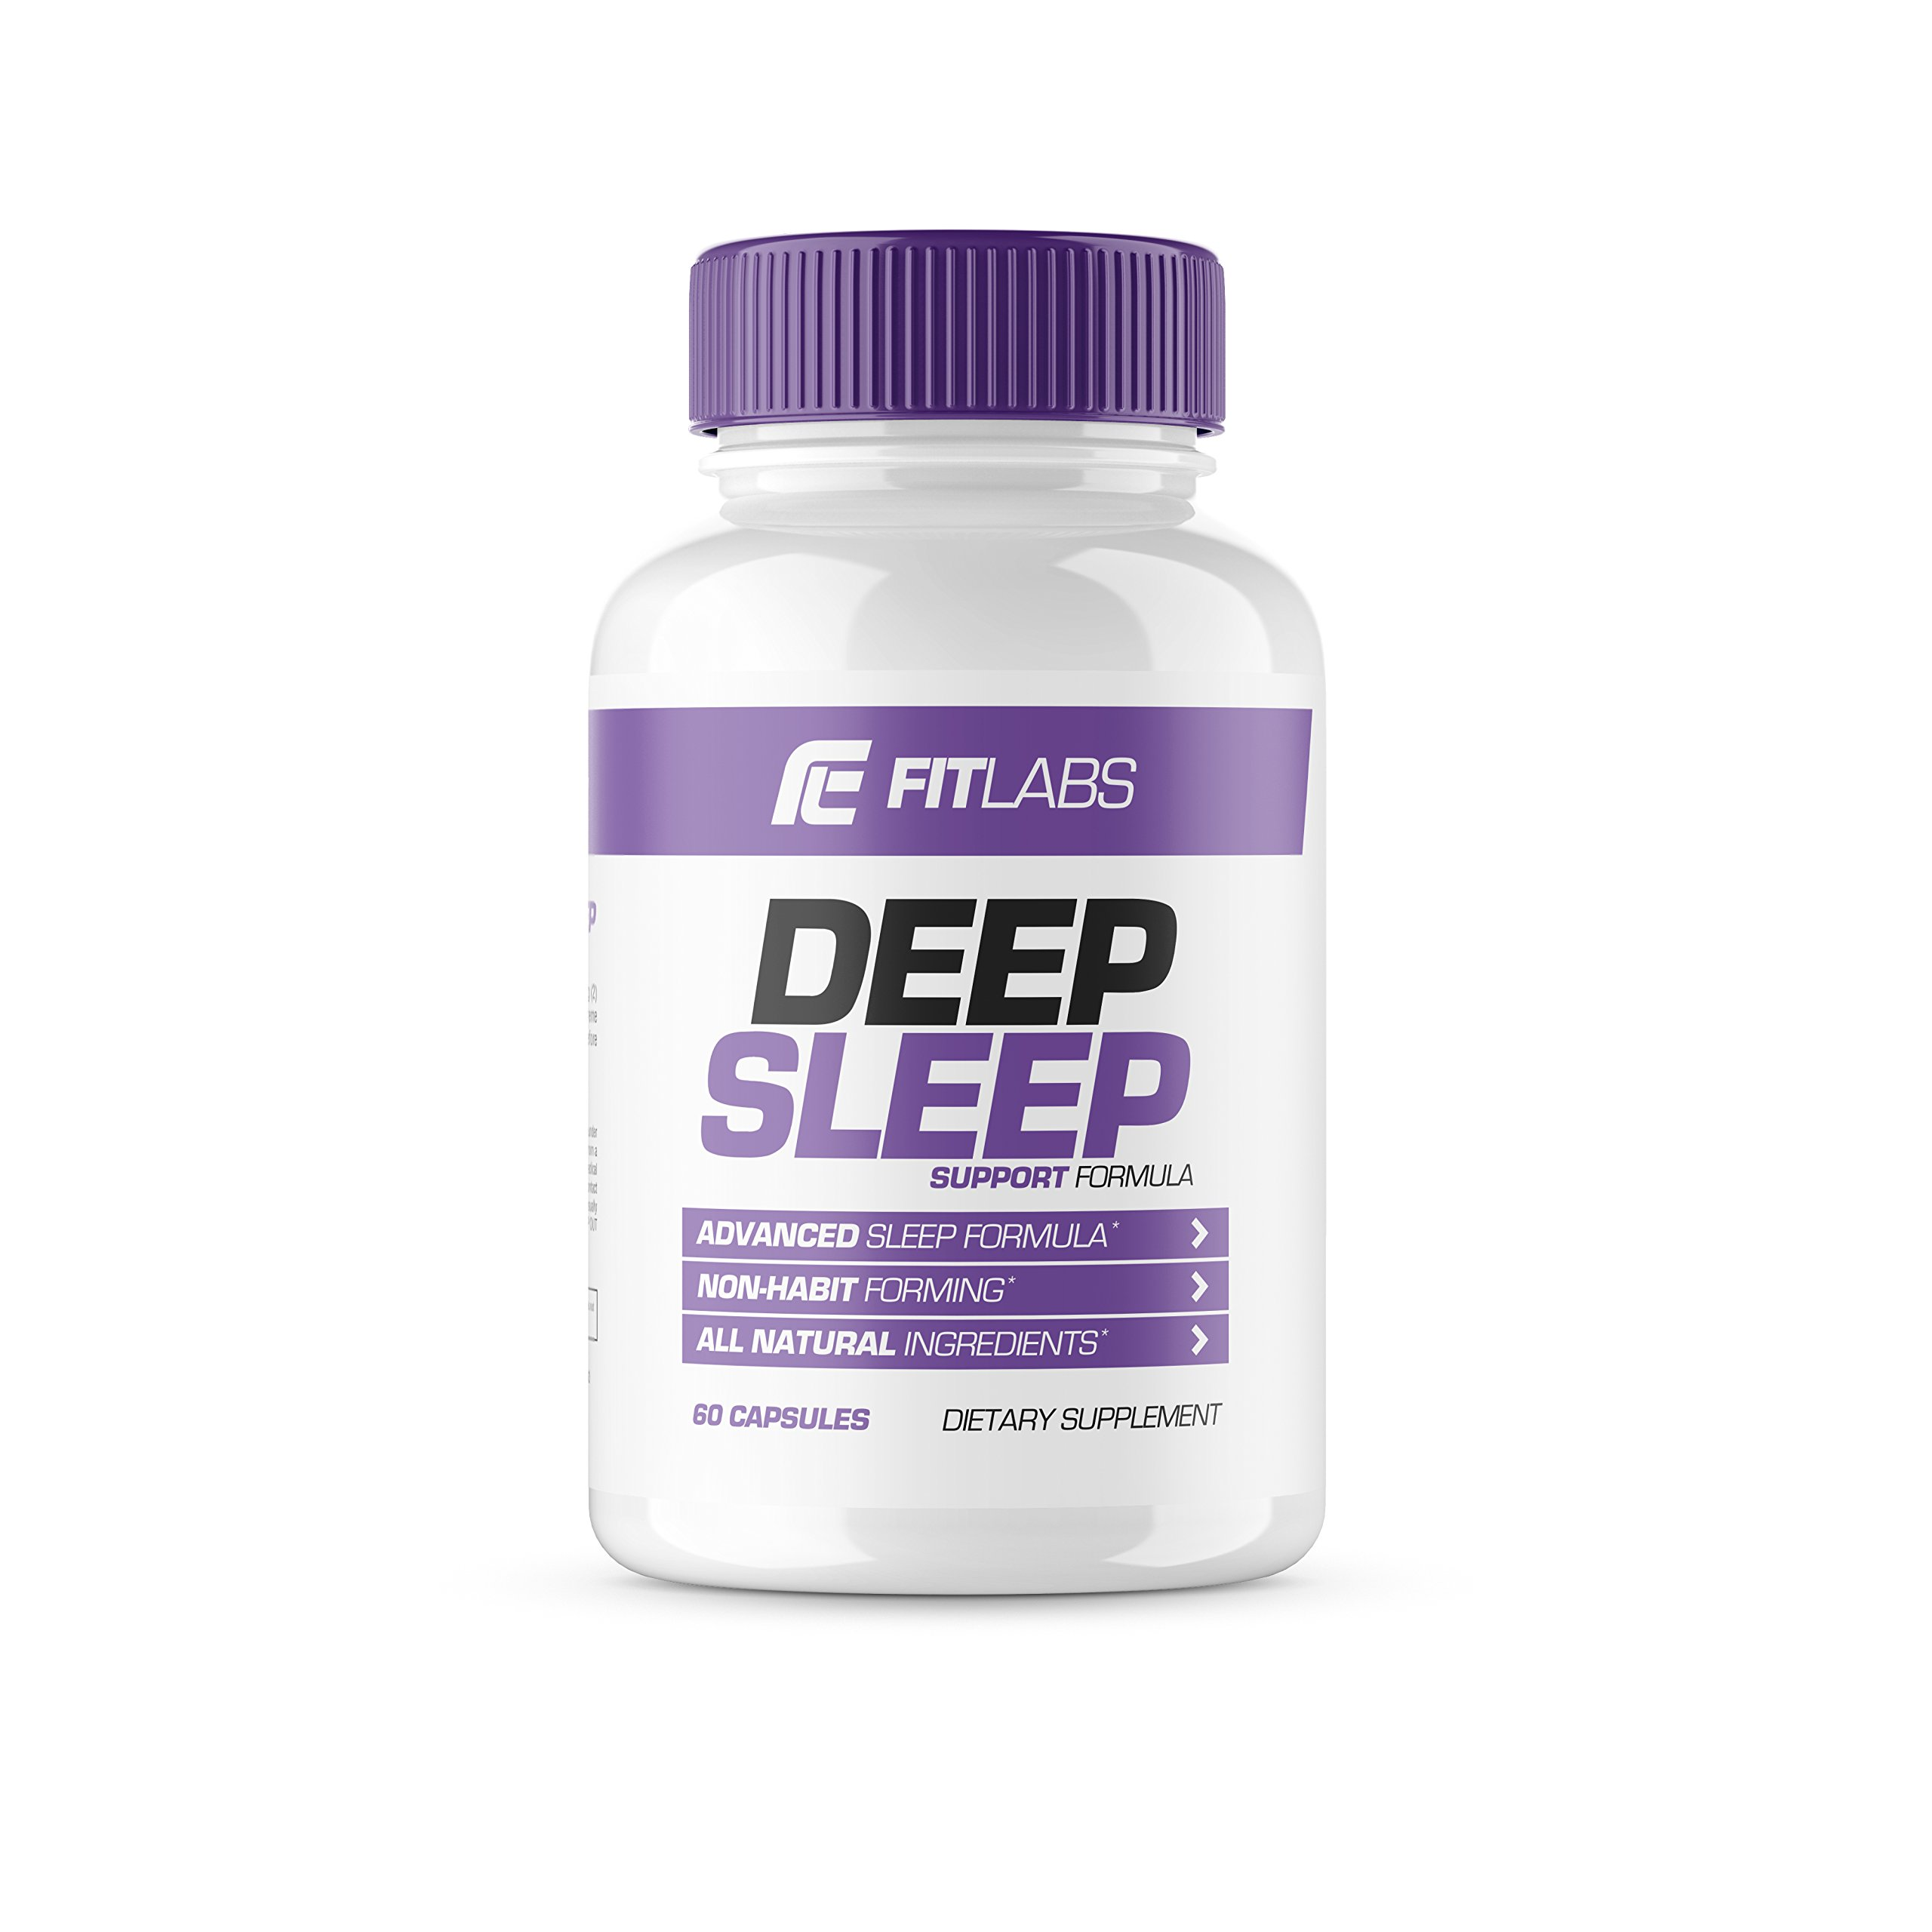 Fit Labs Deep Sleep Support Formula, 60 Non-Habit Forming Capsules, All Natural Ingredients with Melatonin, Ashwaganda, Passion Flower Extract, Herbal Supplement Pills, Aids Falling Asleep Fast